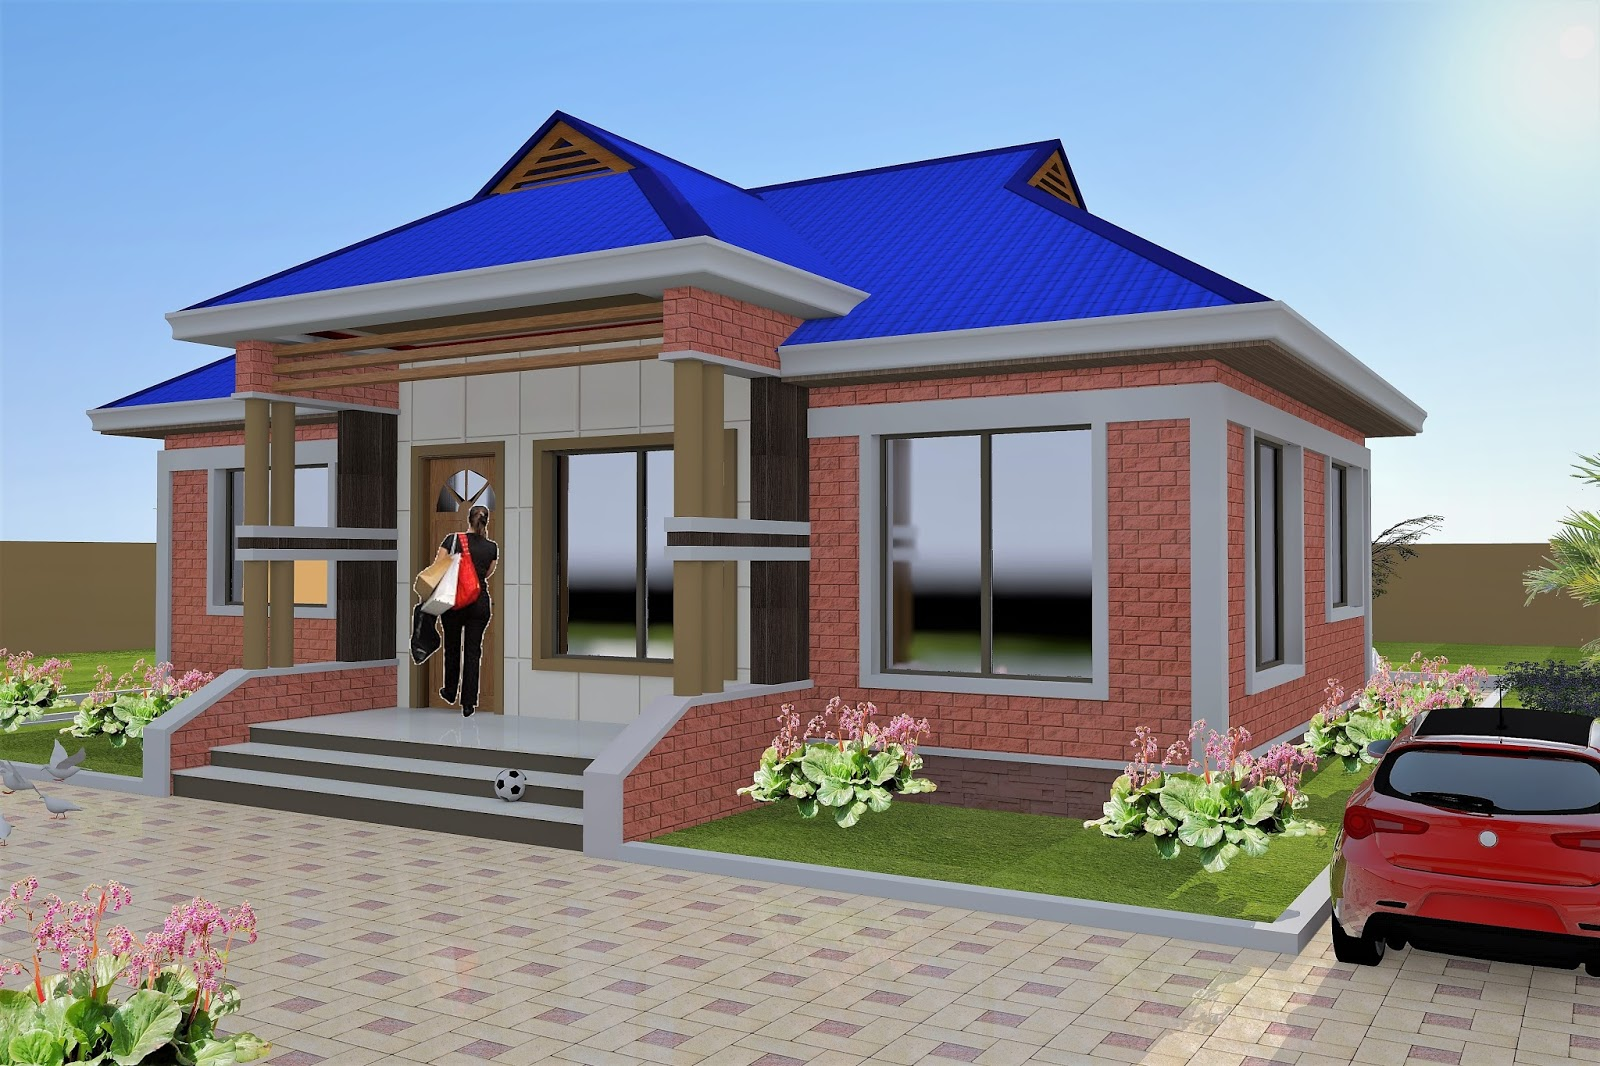 3 Bedroom House Plan (Hydroform Bricks) (ID MA-052)